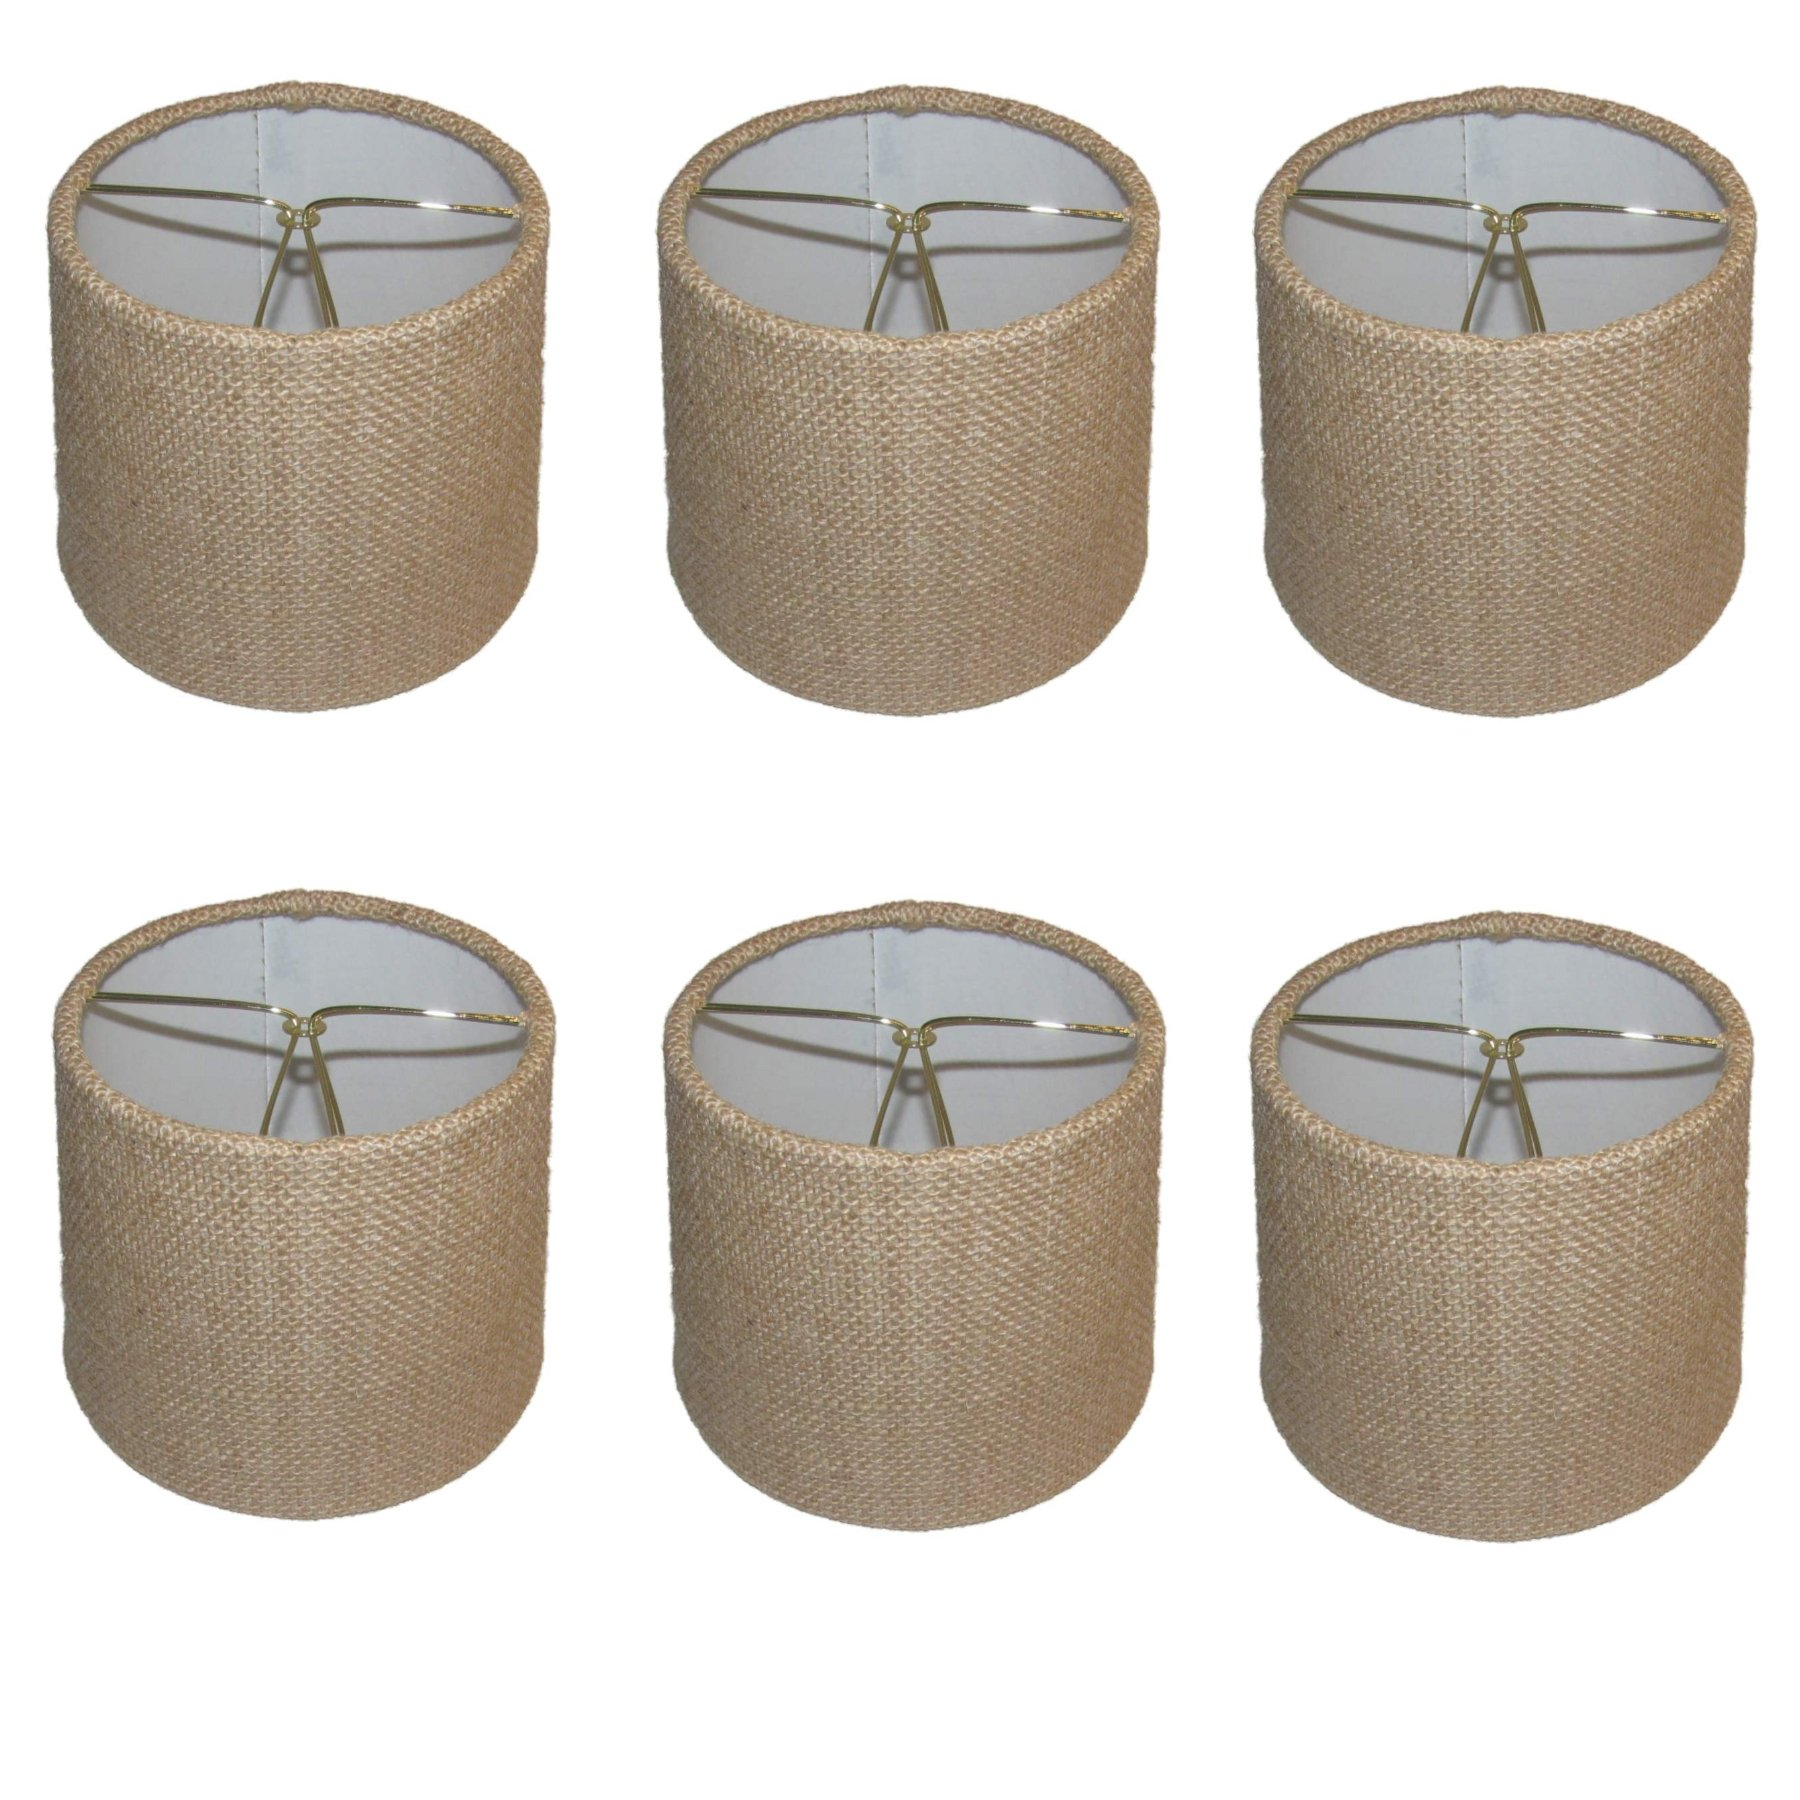 Cheap burlap chandelier shades find burlap chandelier shades deals get quotations upgradelights set of six 6 inch barrel drum chandelier shades in natural burlap fabric arubaitofo Images